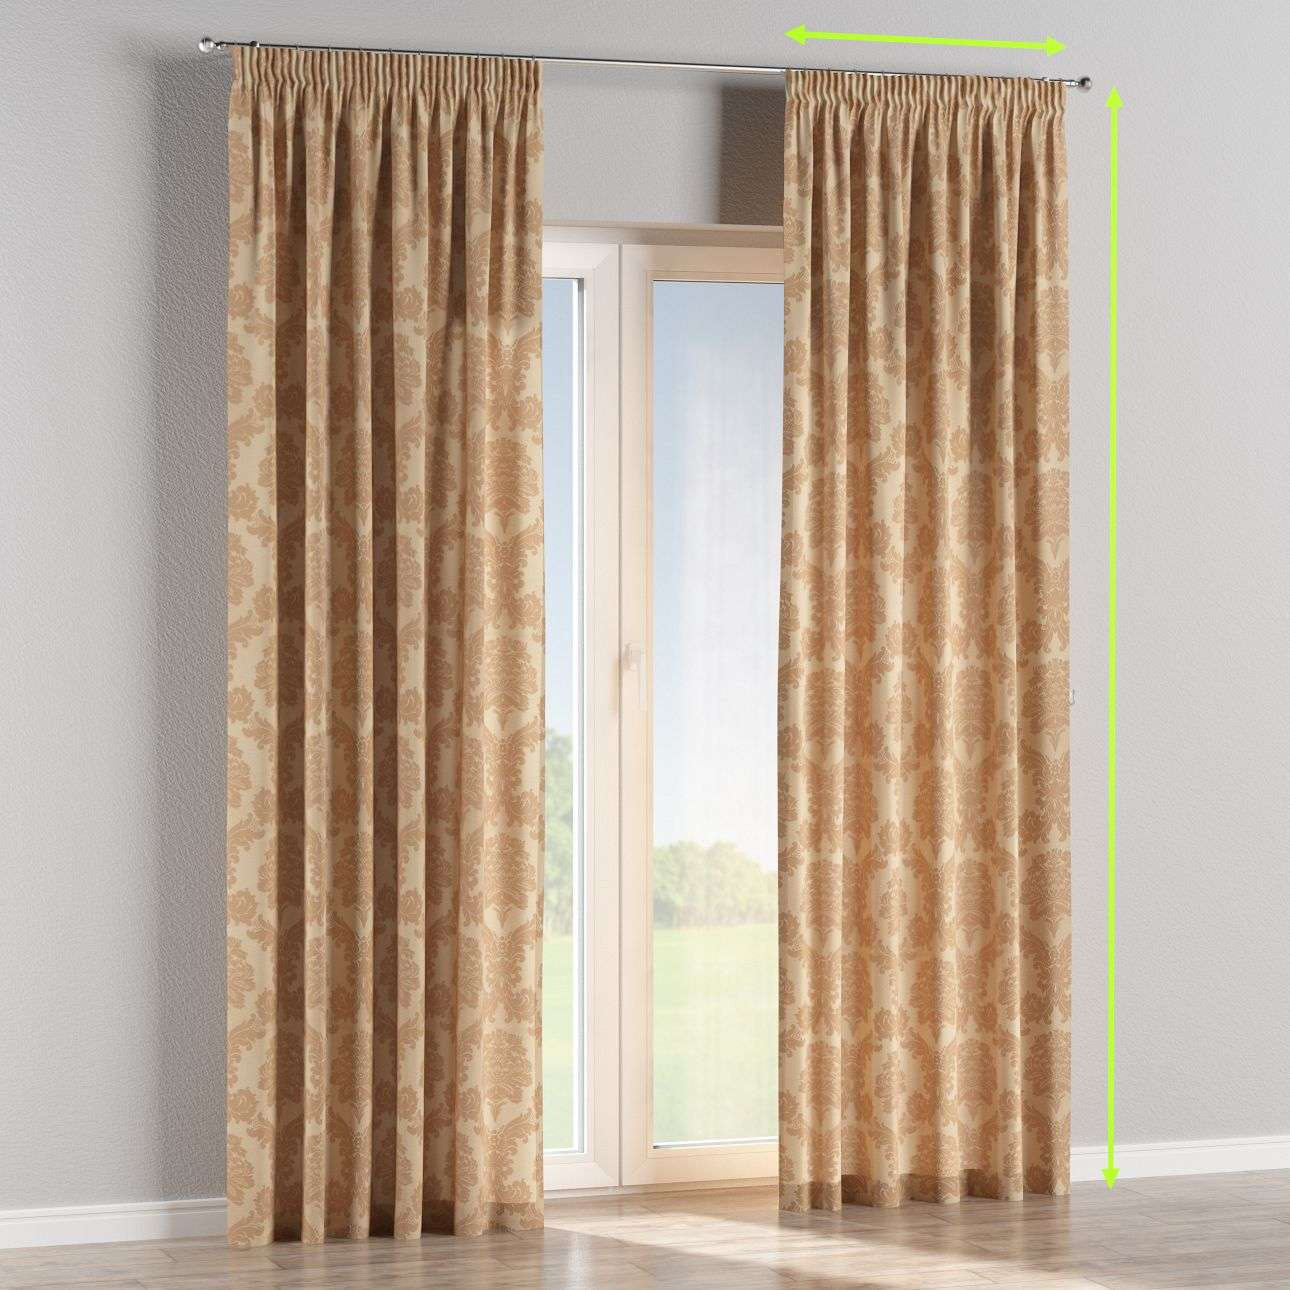 Pencil pleat lined curtains in collection Damasco, fabric: 613-04